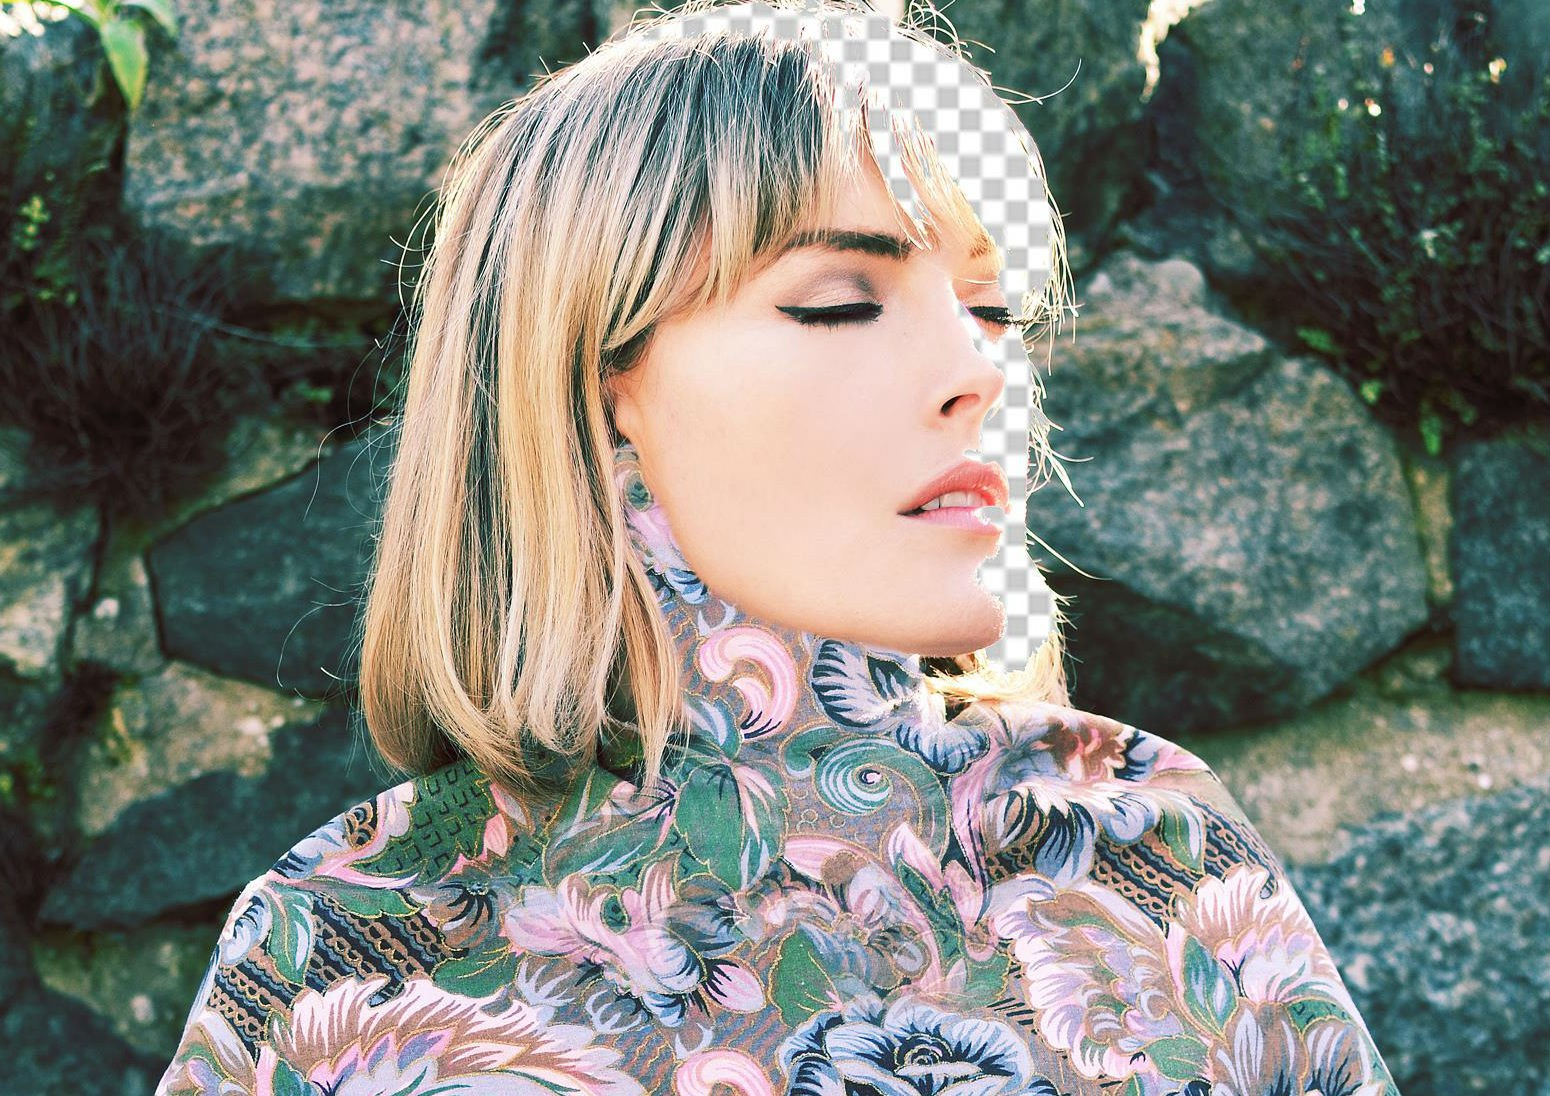 Gwenno channels the druids in her 'Eus Keus?' video